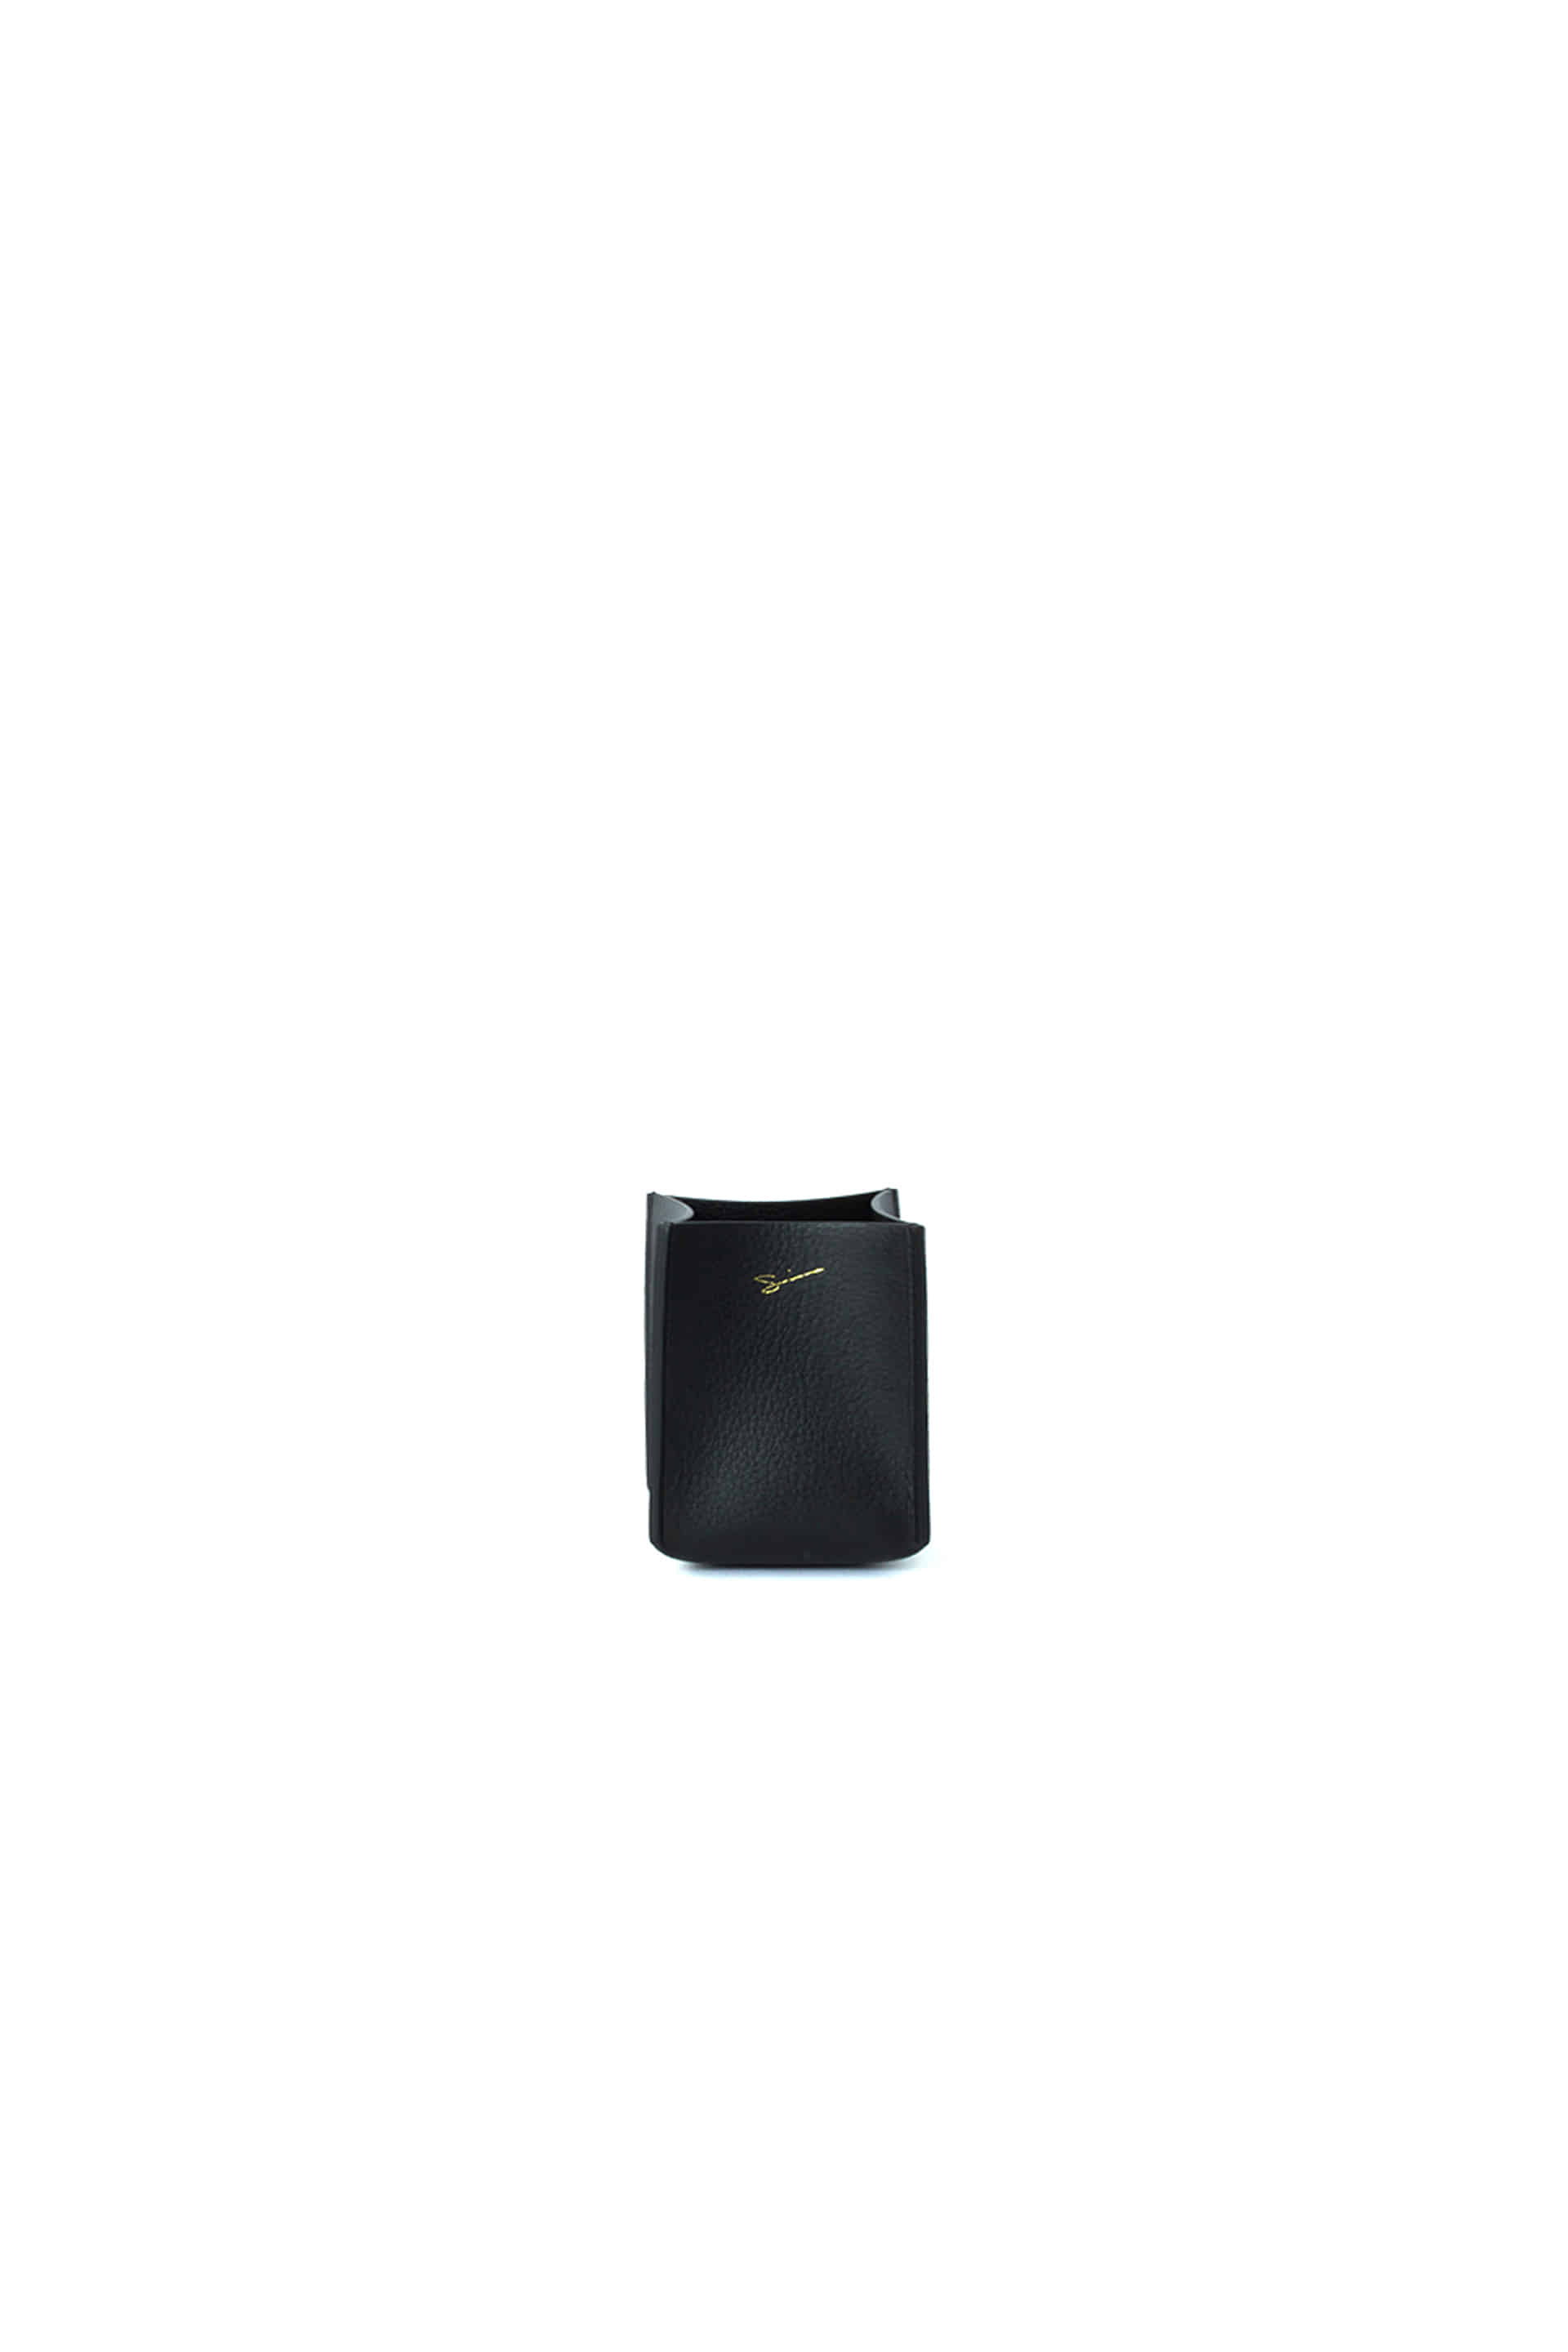 PENCIL POT 22 Black